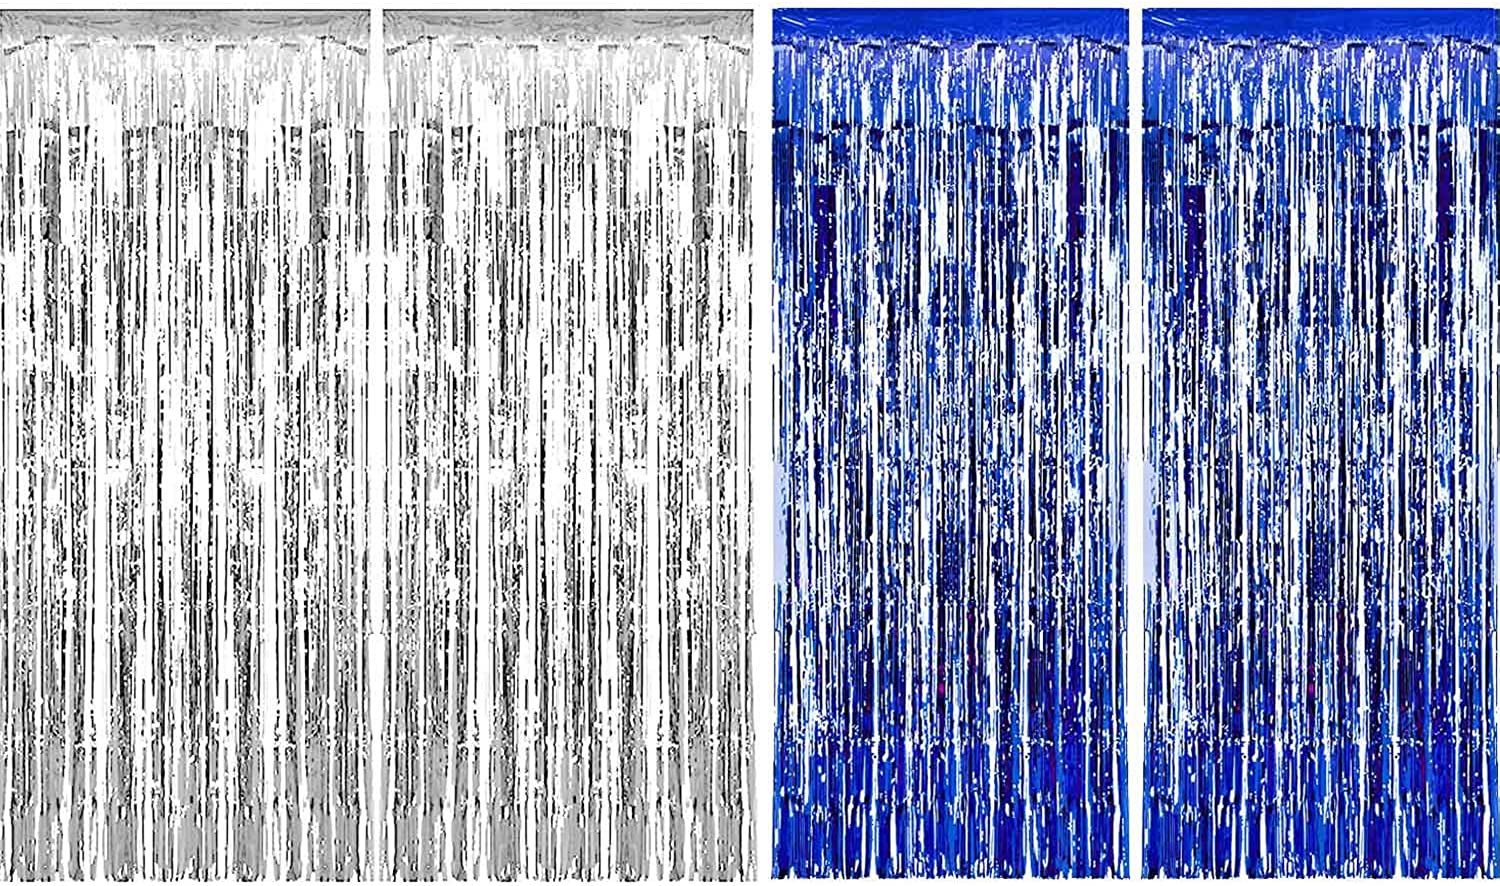 Sumind 4 Pack Foil Curtains Metallic Fringe Curtains Shimmer Curtain Birthday Wedding Party Christmas Decorations (Silver bluee)